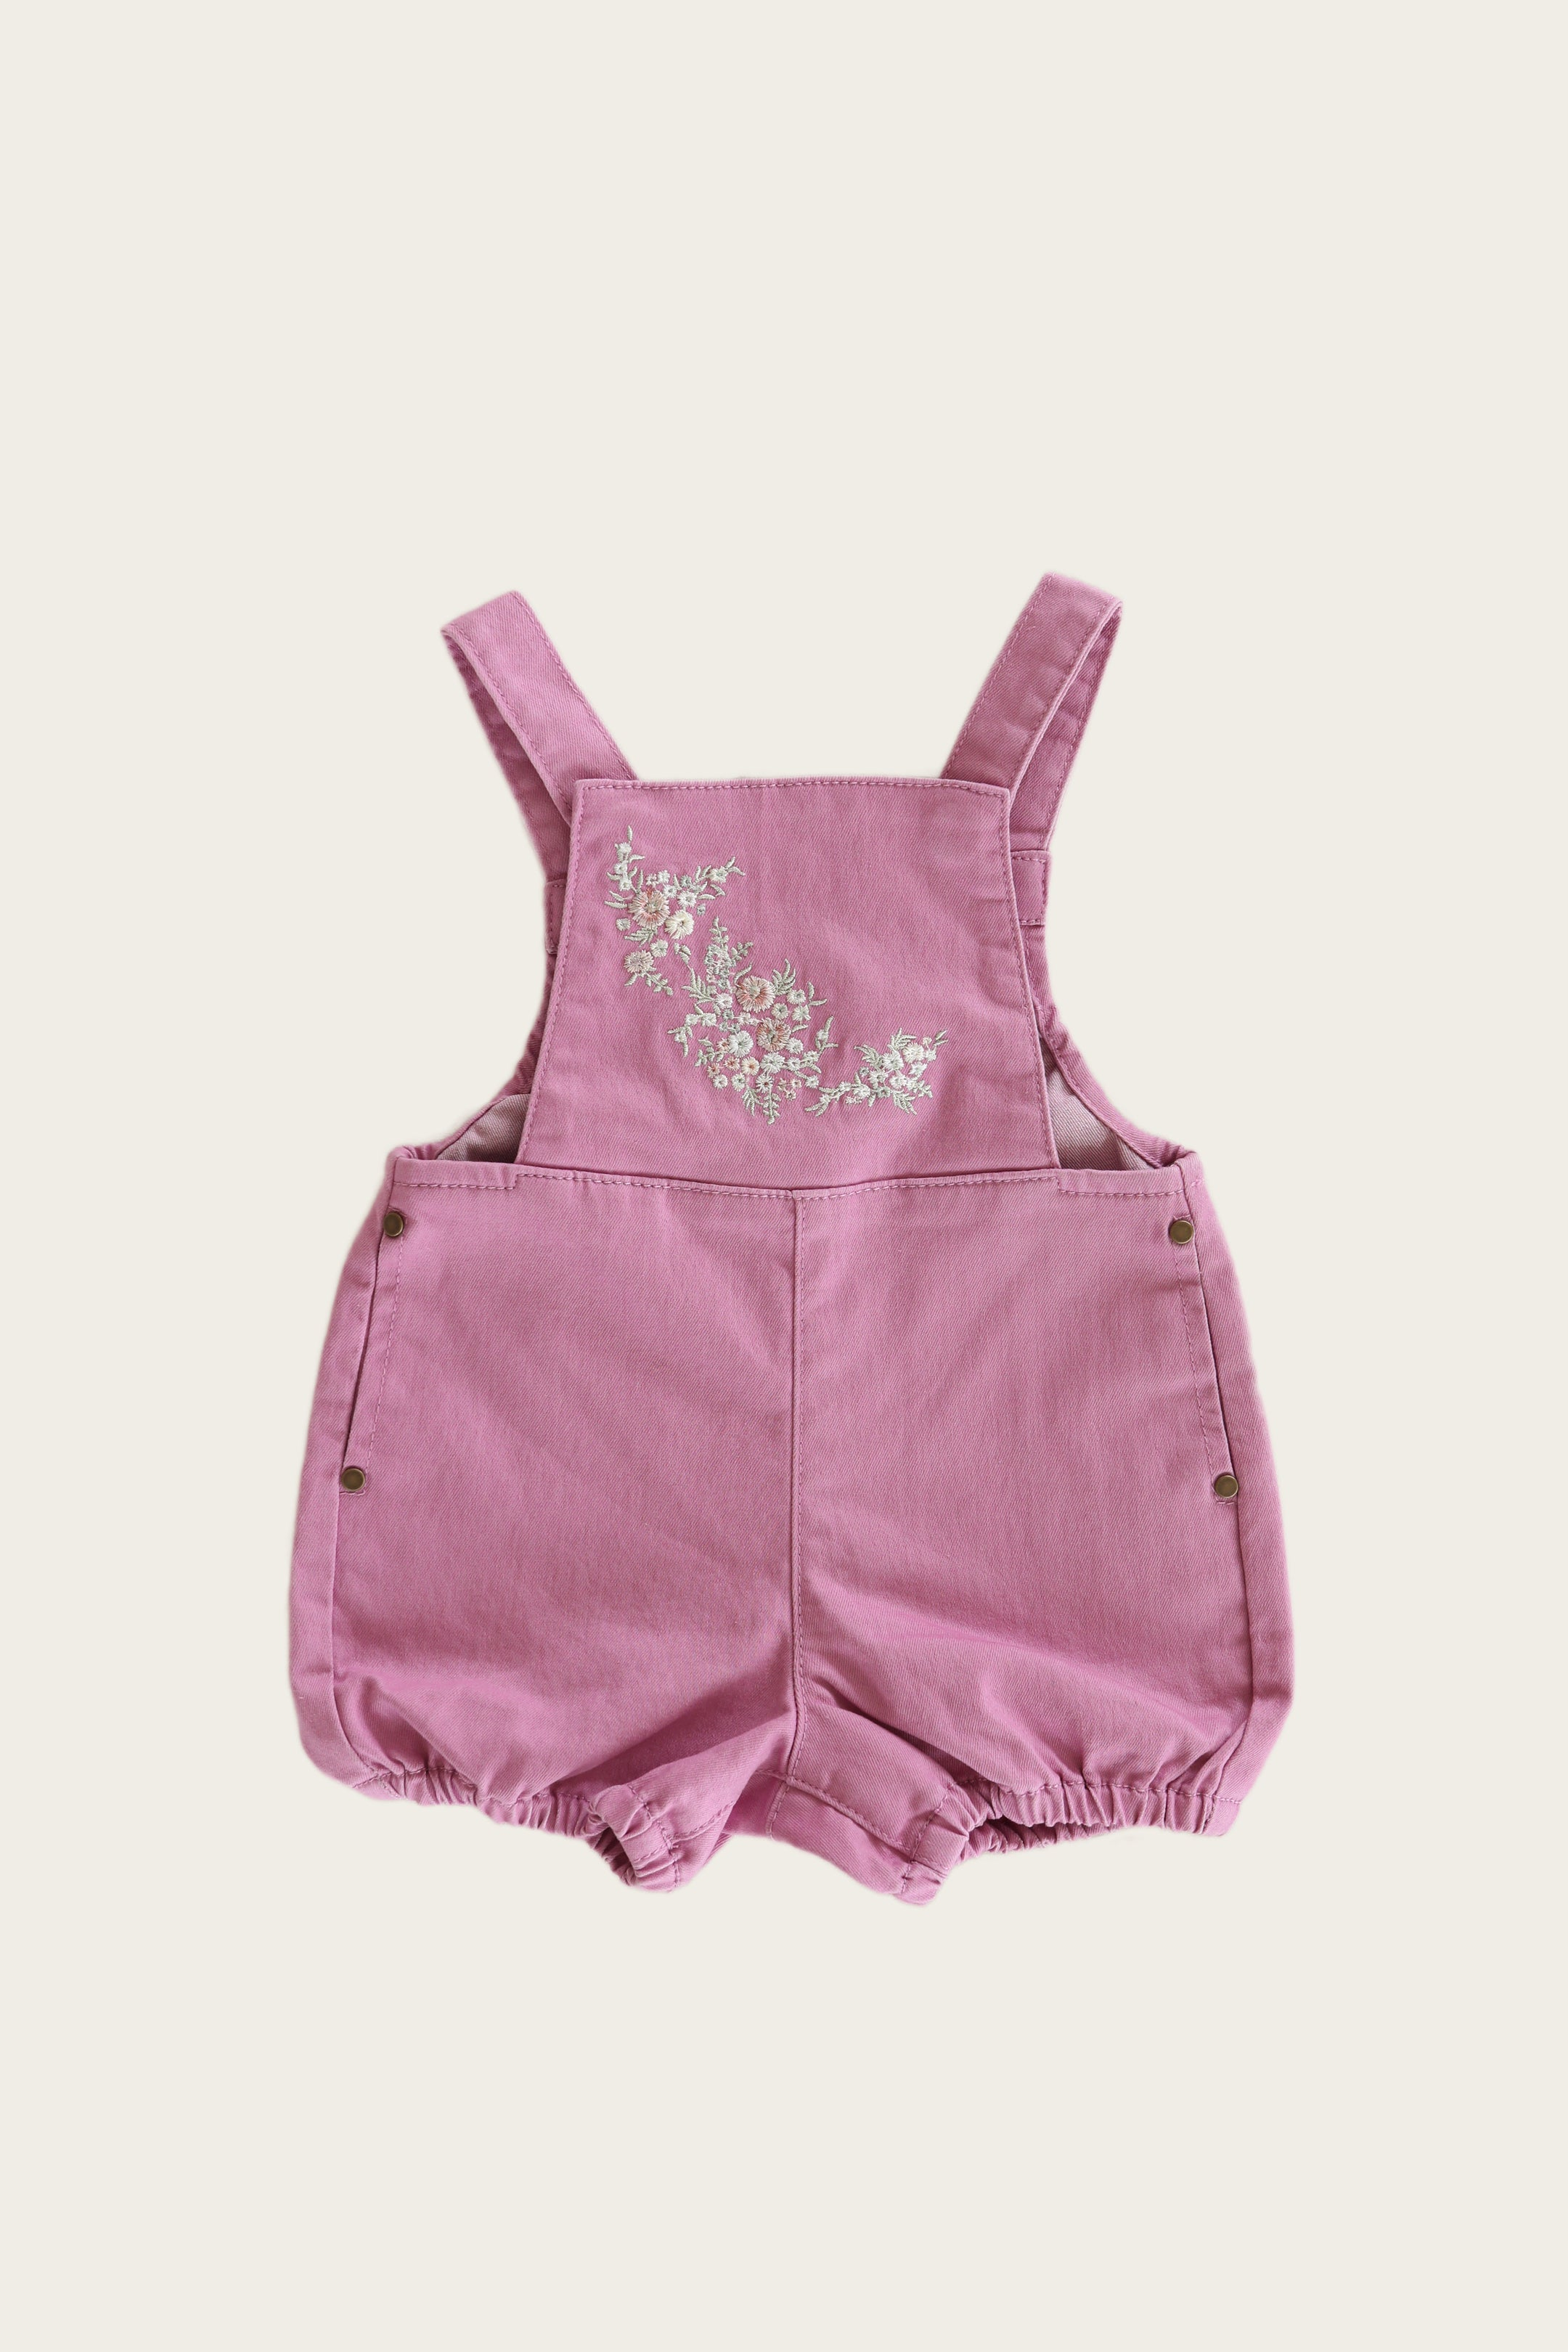 CHARLOTTE PLAYSUIT - ORCHID -Flourish